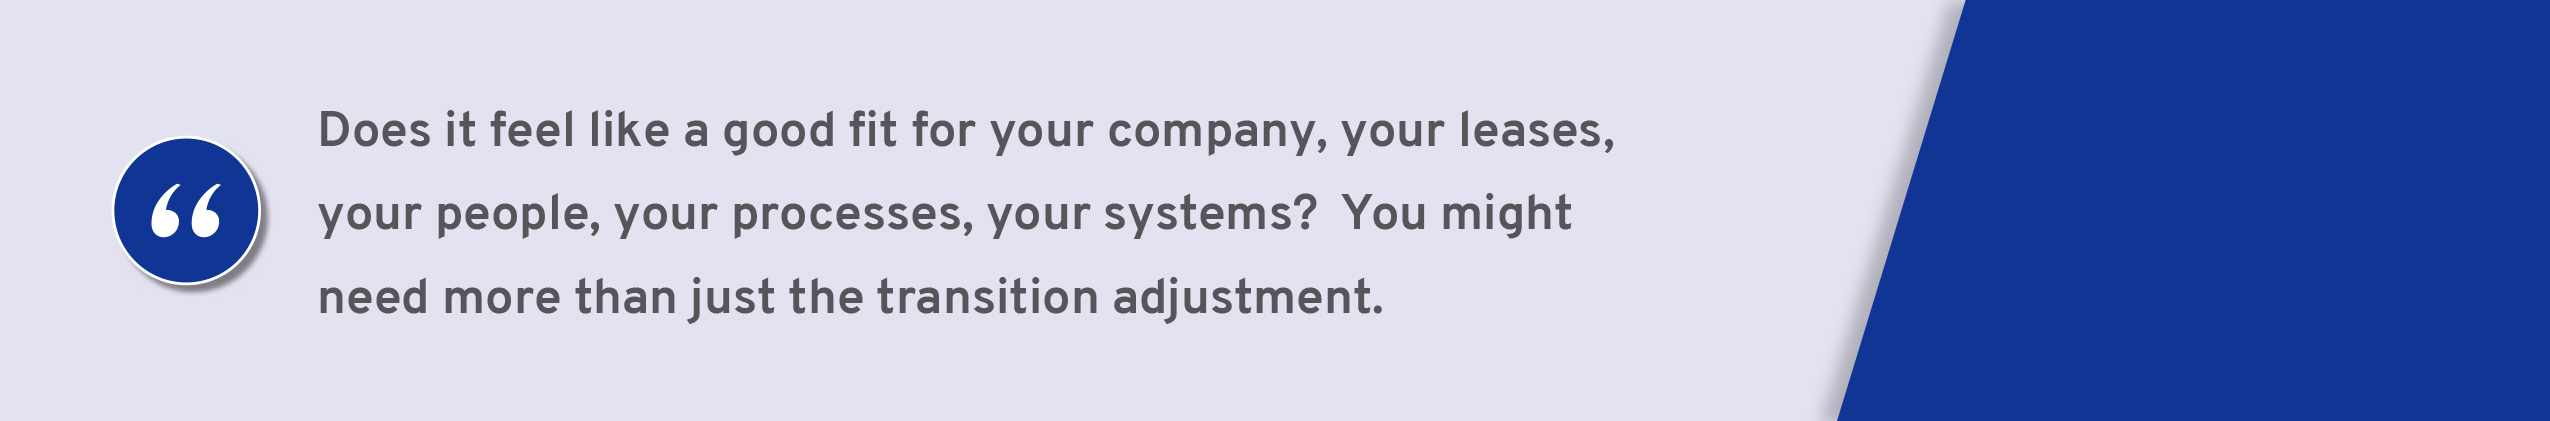 Why-Choosing-Lease-Software-Can-Be-Challenging.jpg